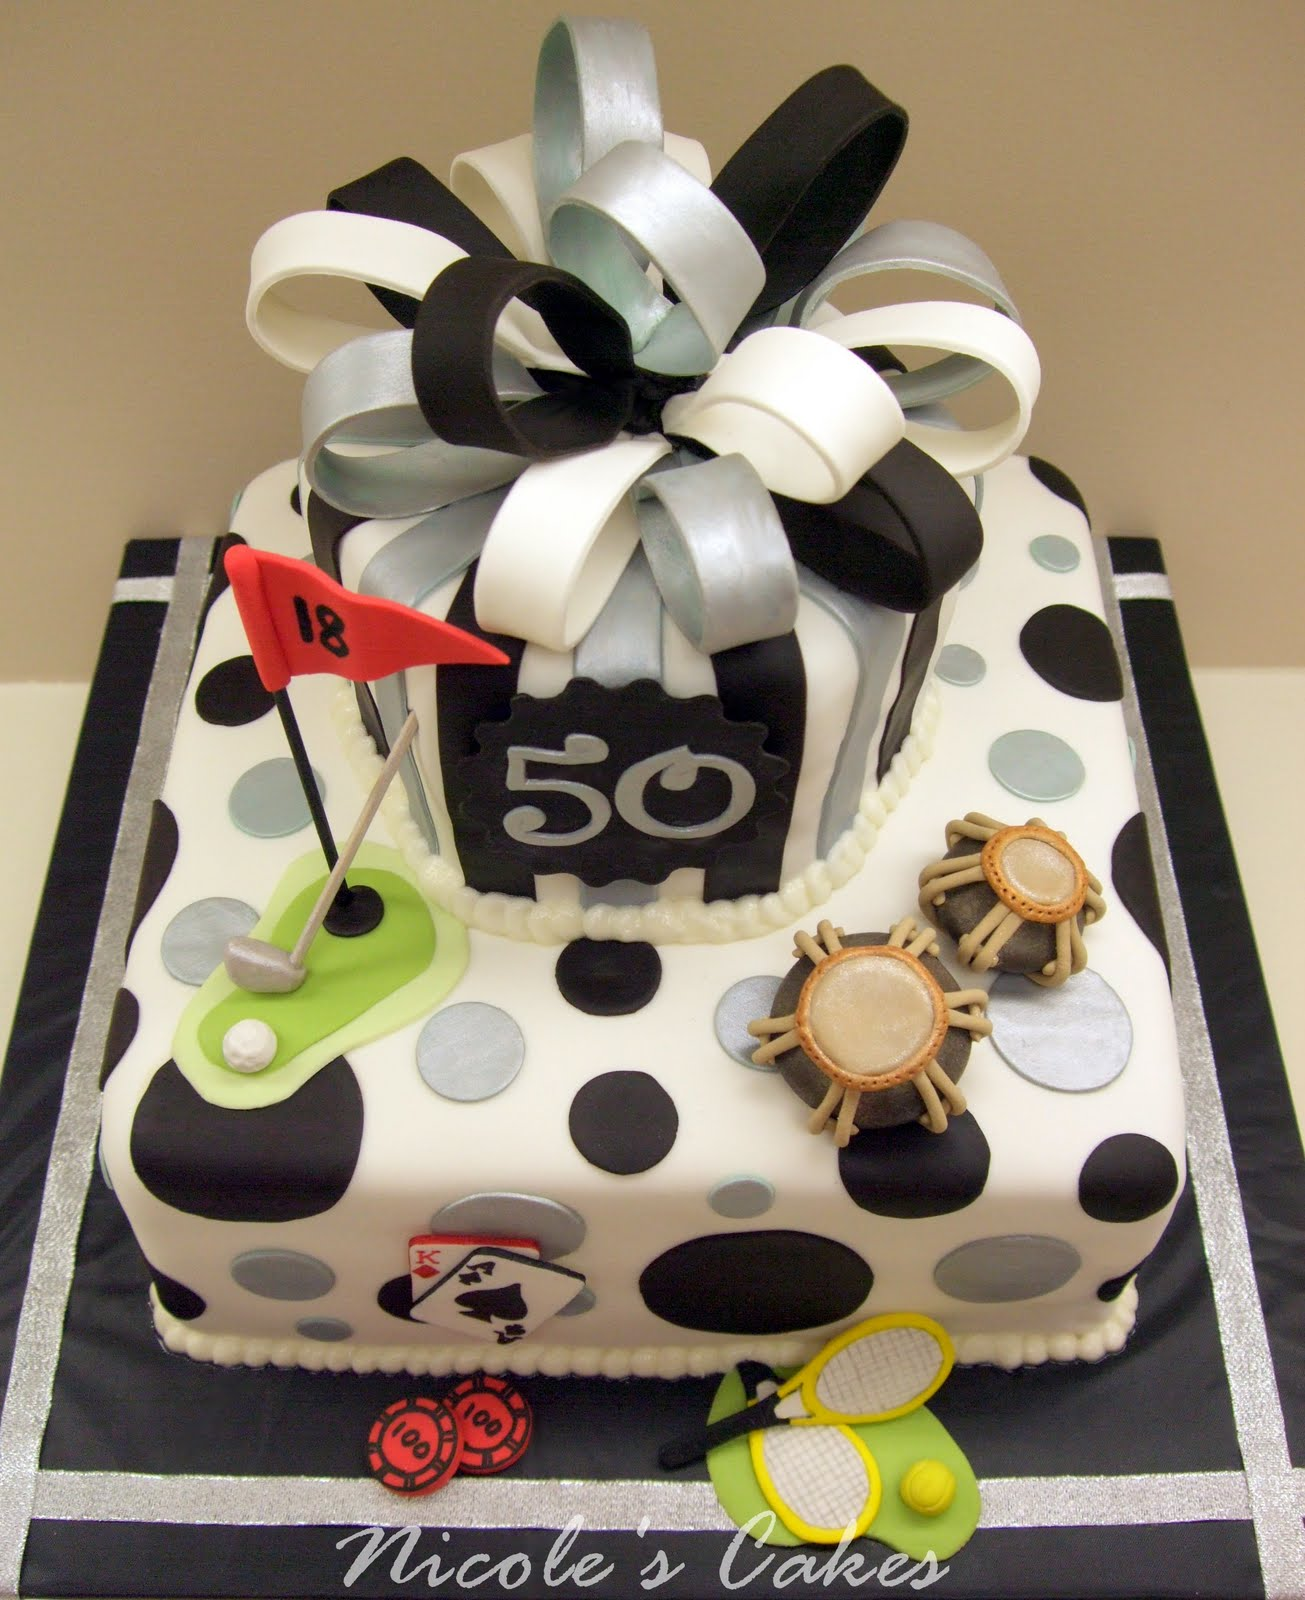 On Birthday Cakes Favorite Things A 50th Birthday Cake